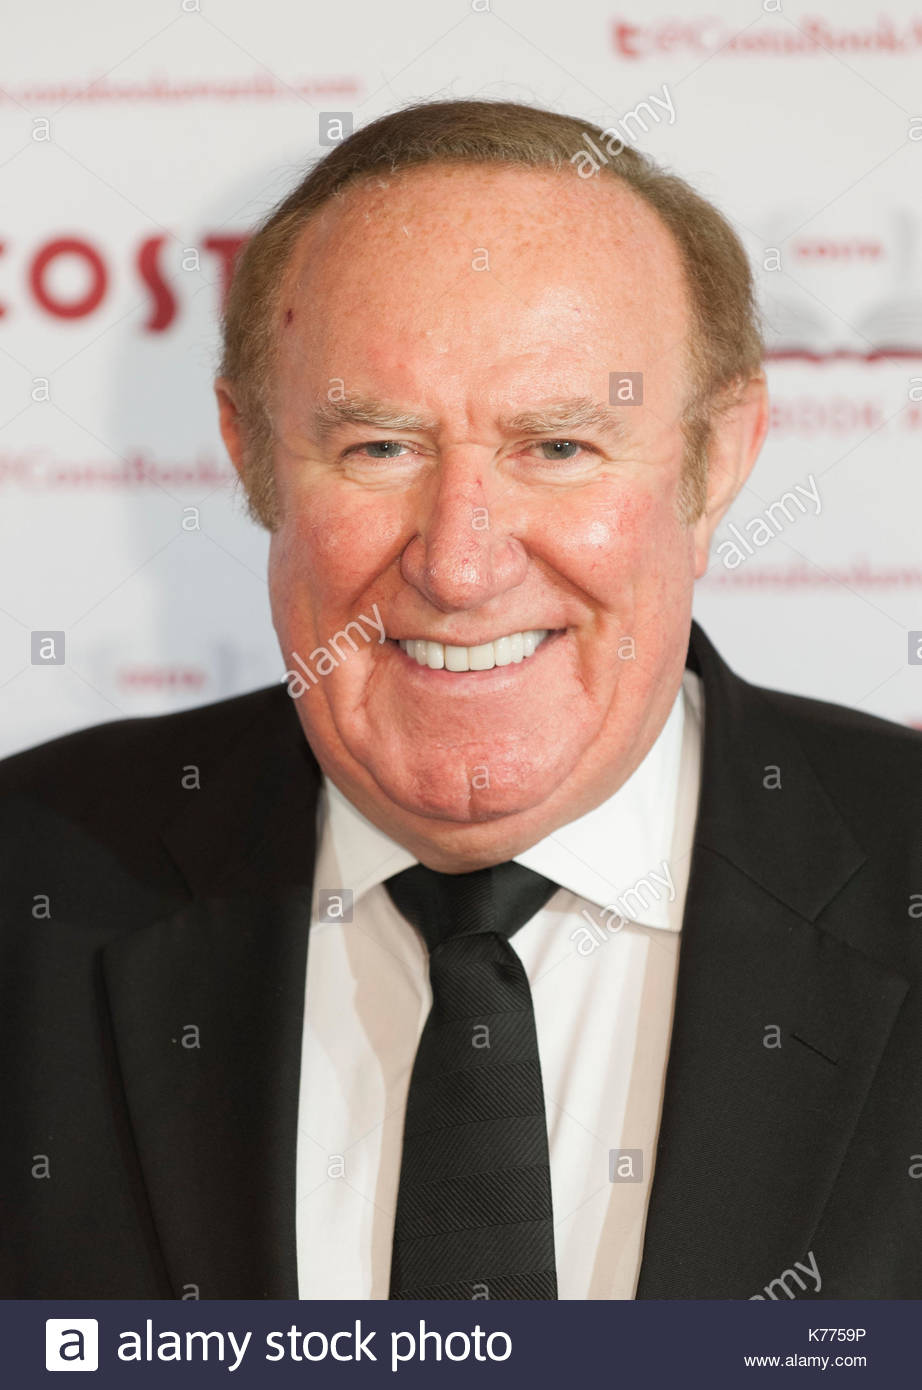 andrew neil - photo #34